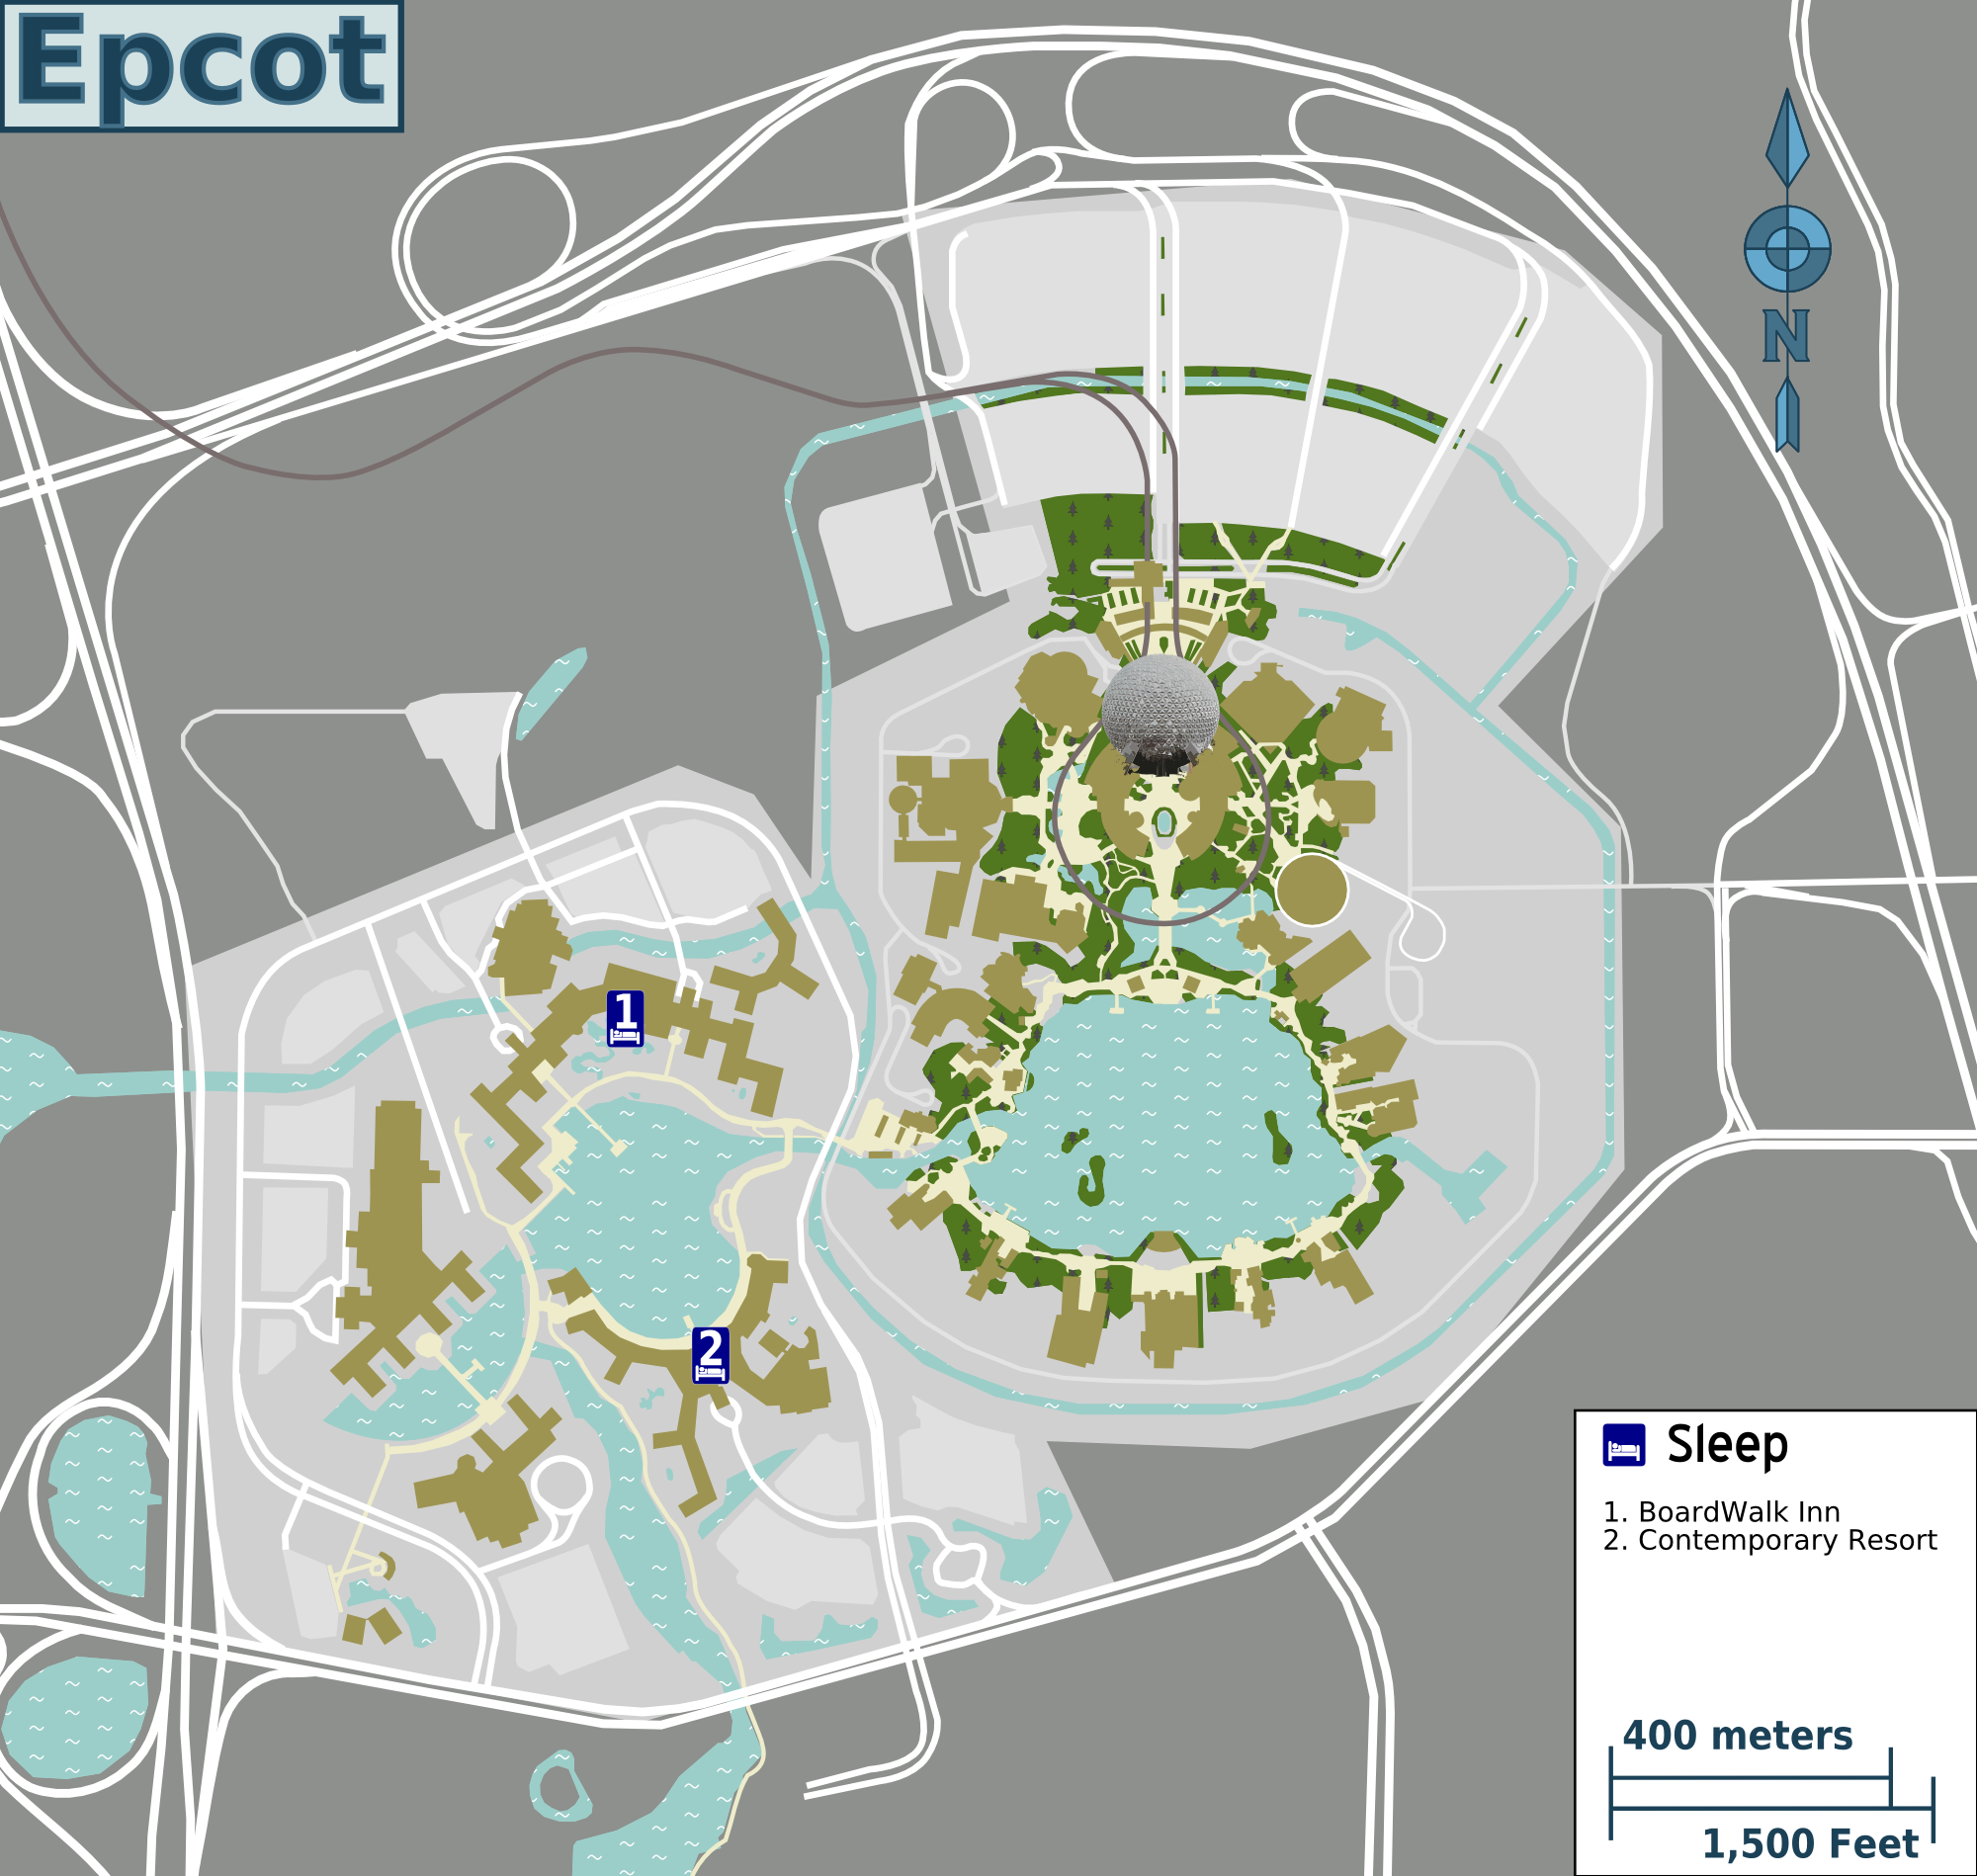 File:Epcot and resorts map.png - Wikimedia Commons